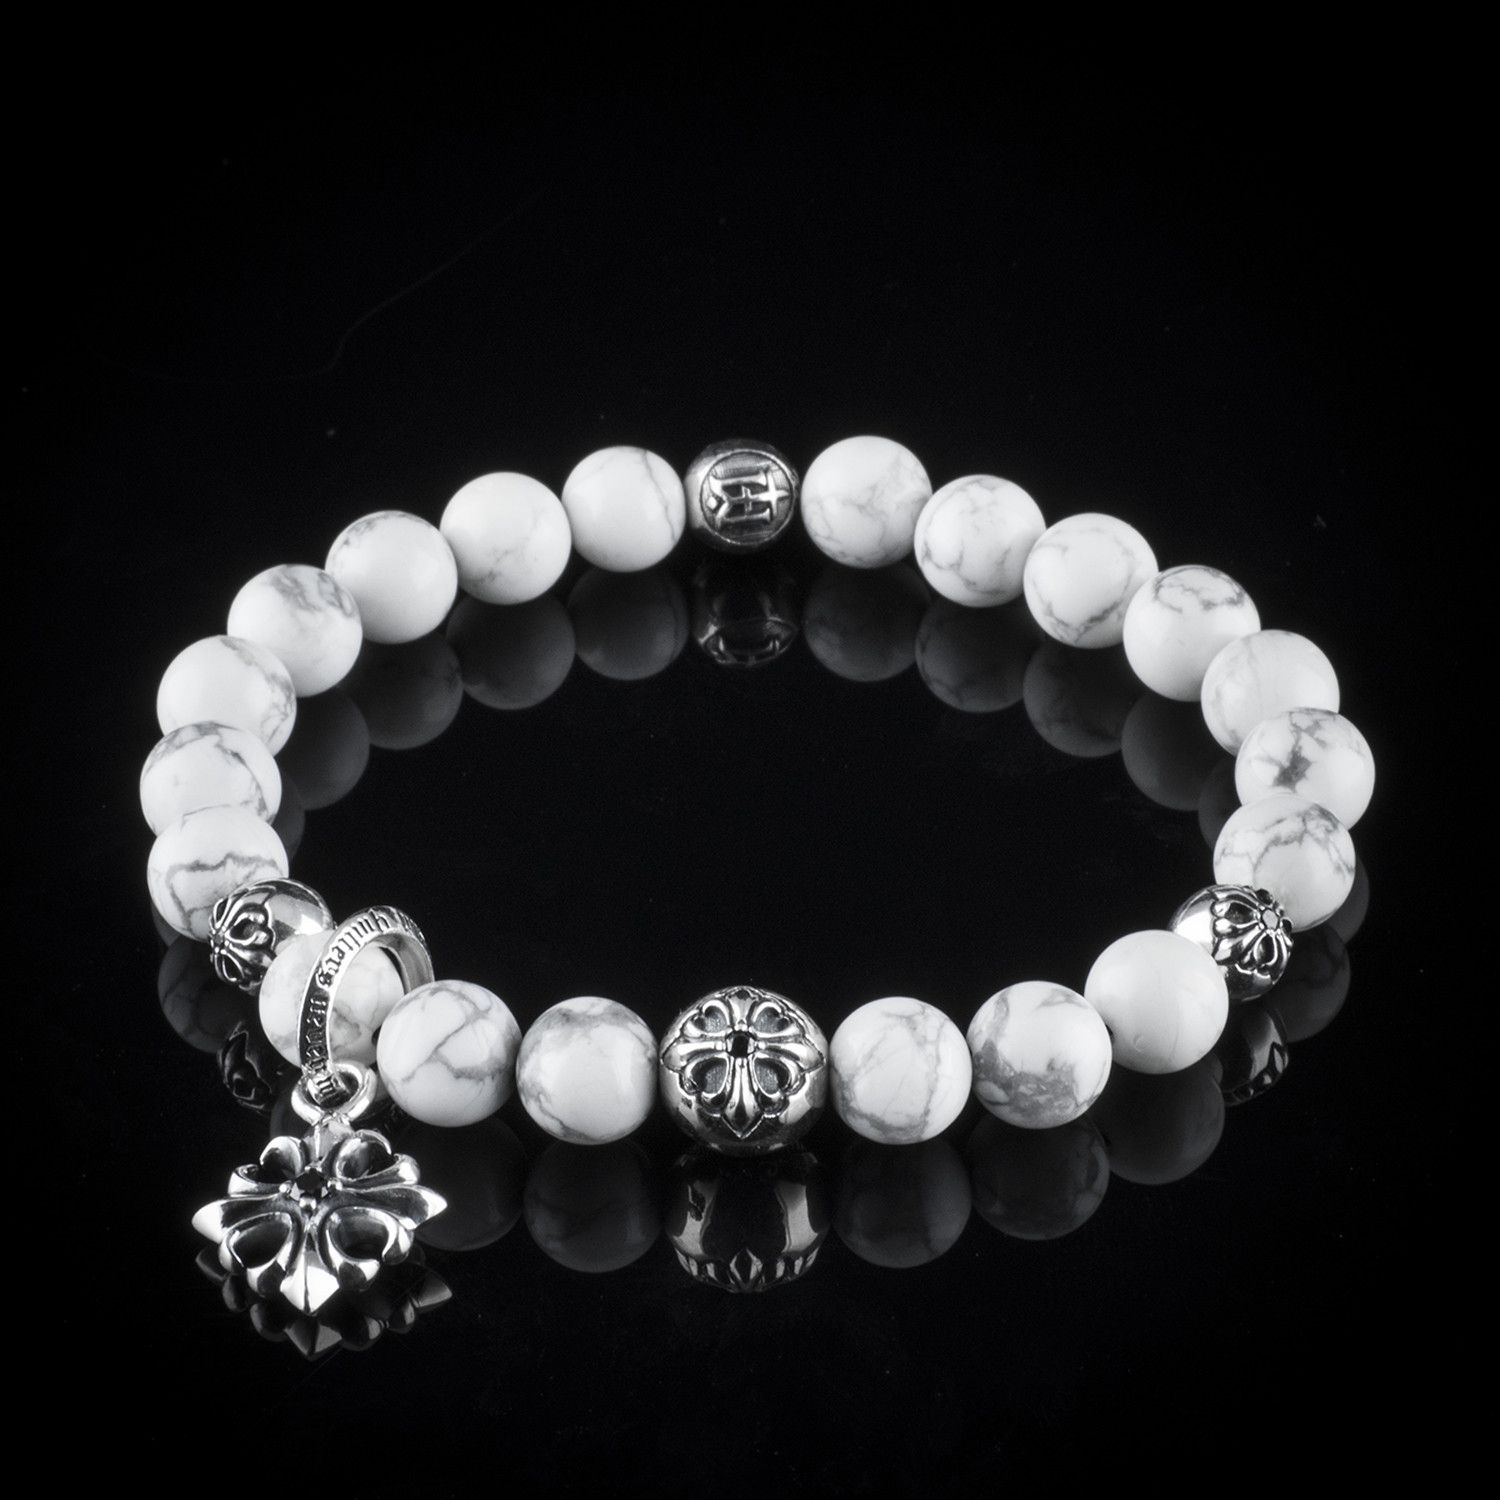 New Elastic Series Available On Jaidam Bracelet Style Silver Beads